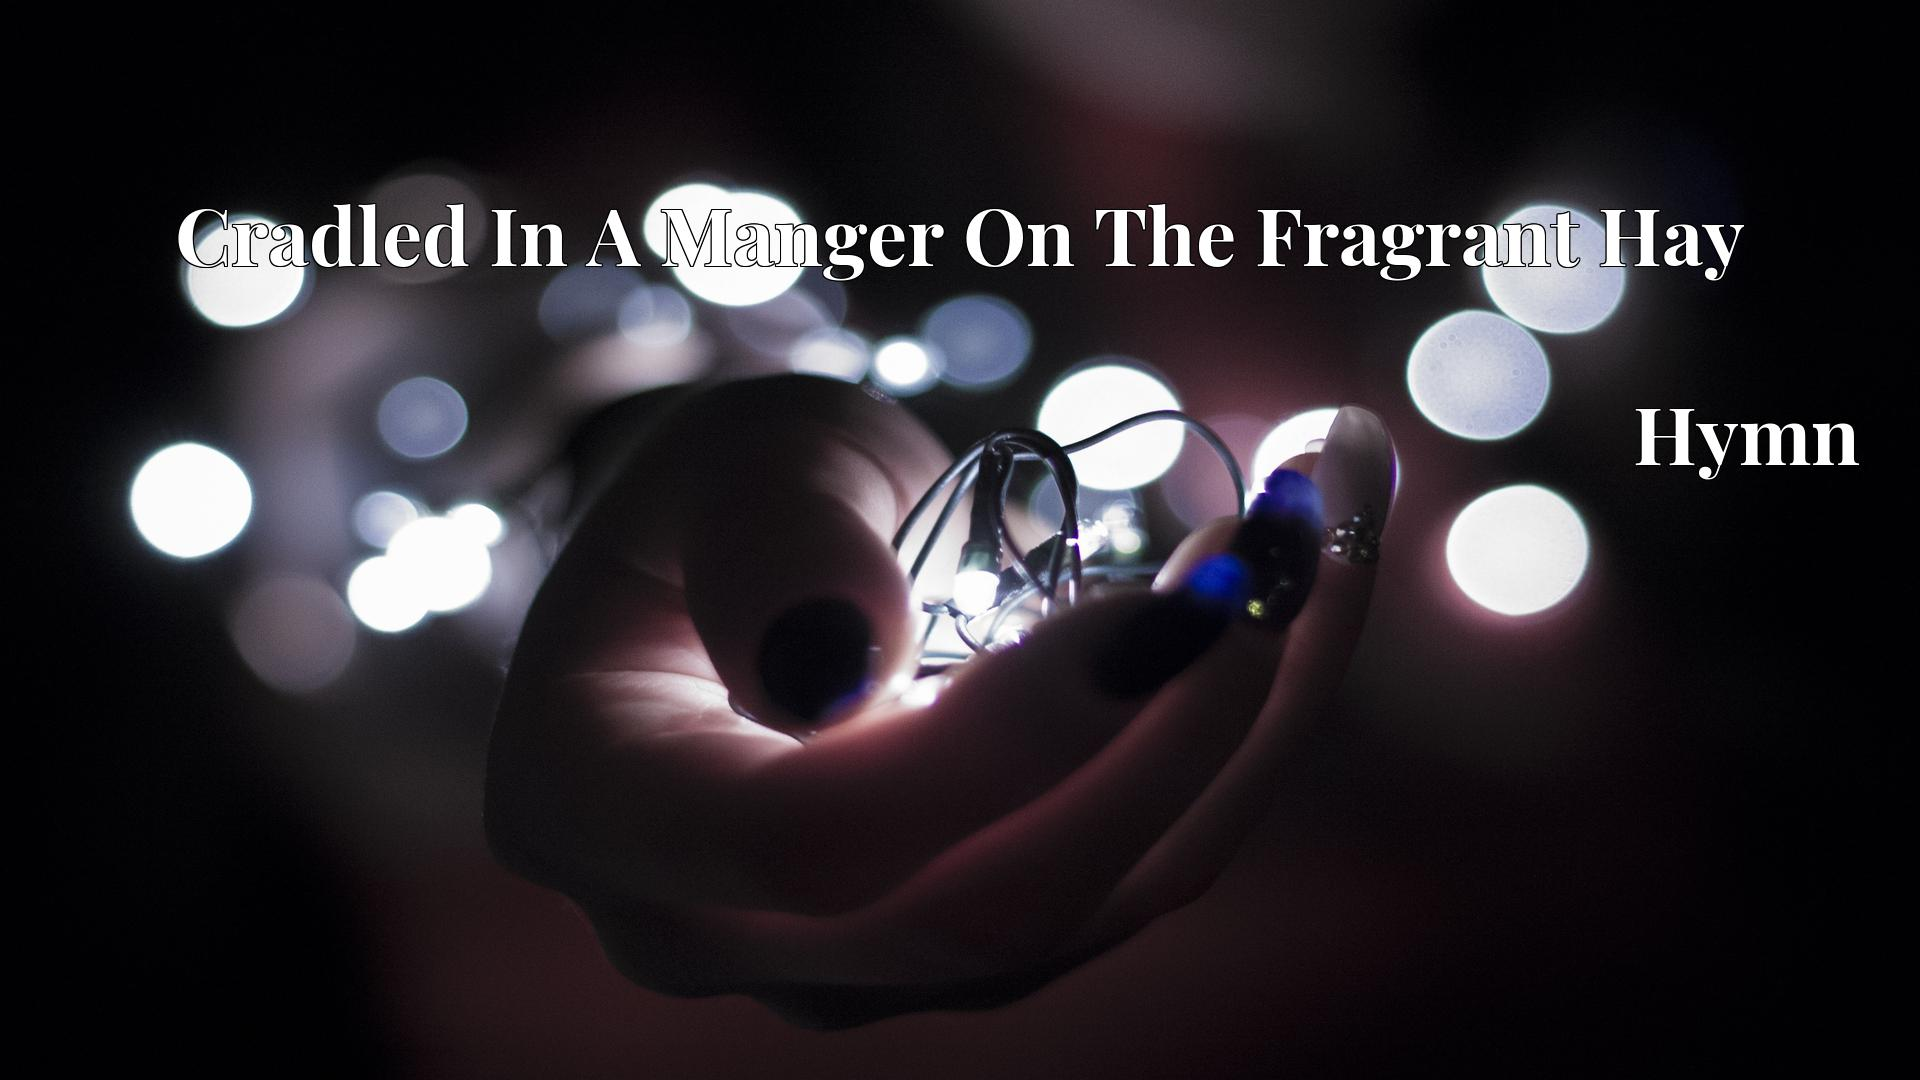 Cradled In A Manger On The Fragrant Hay - Hymn